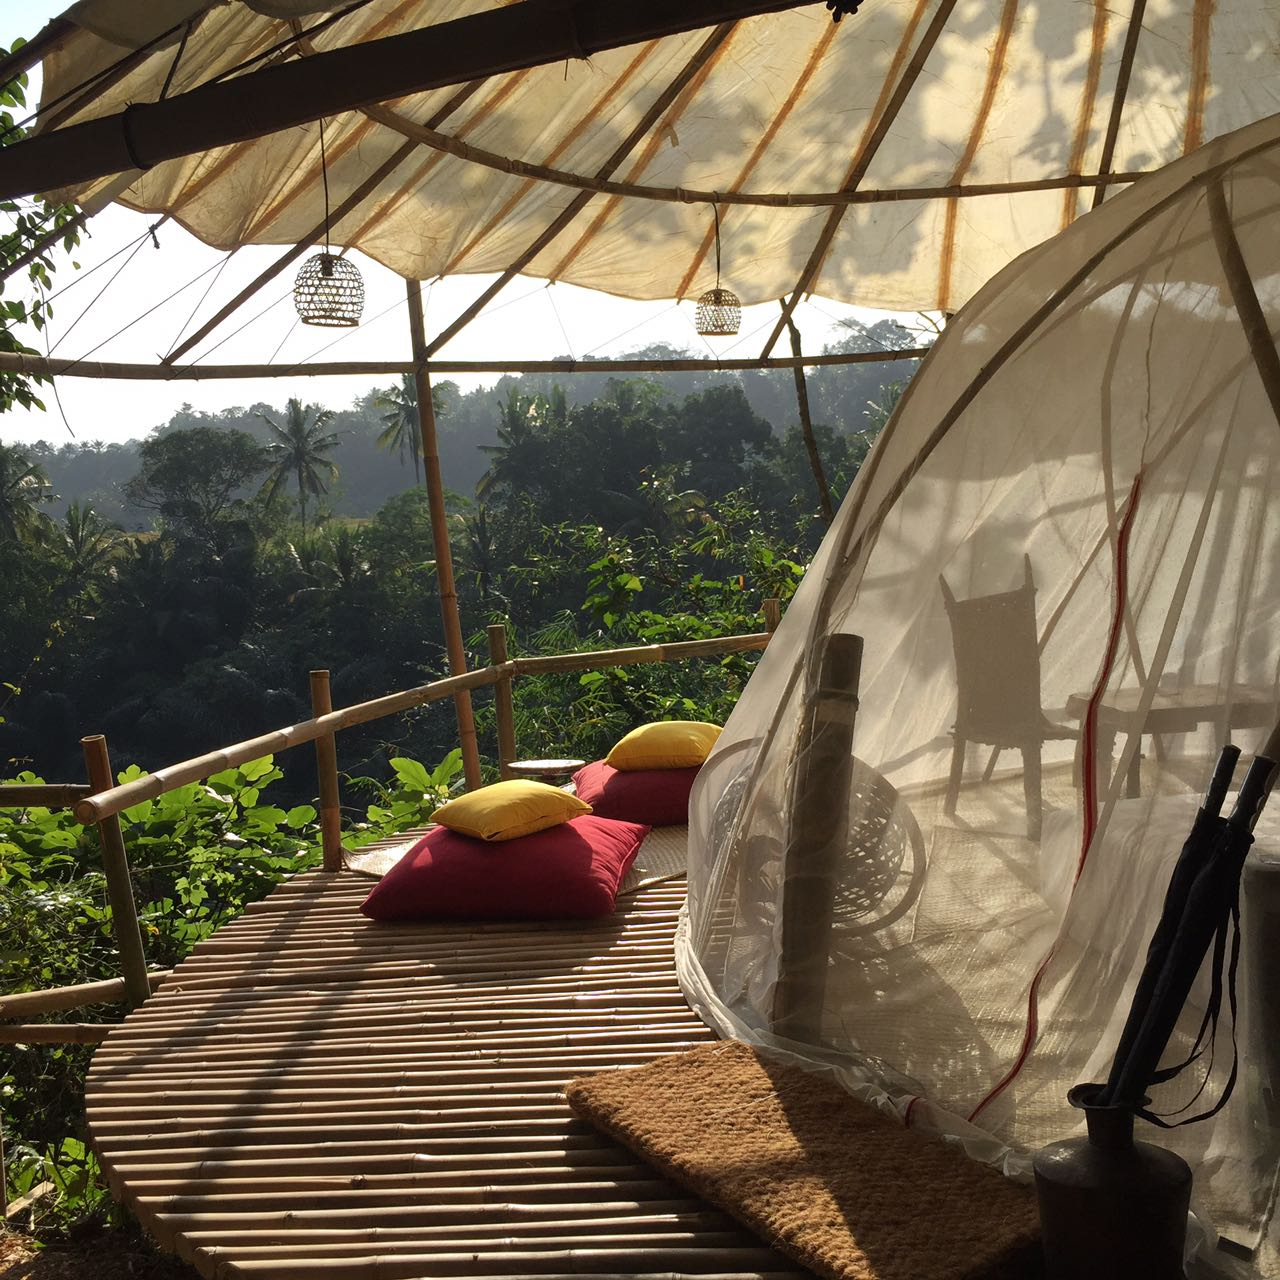 Eco camping in Bali